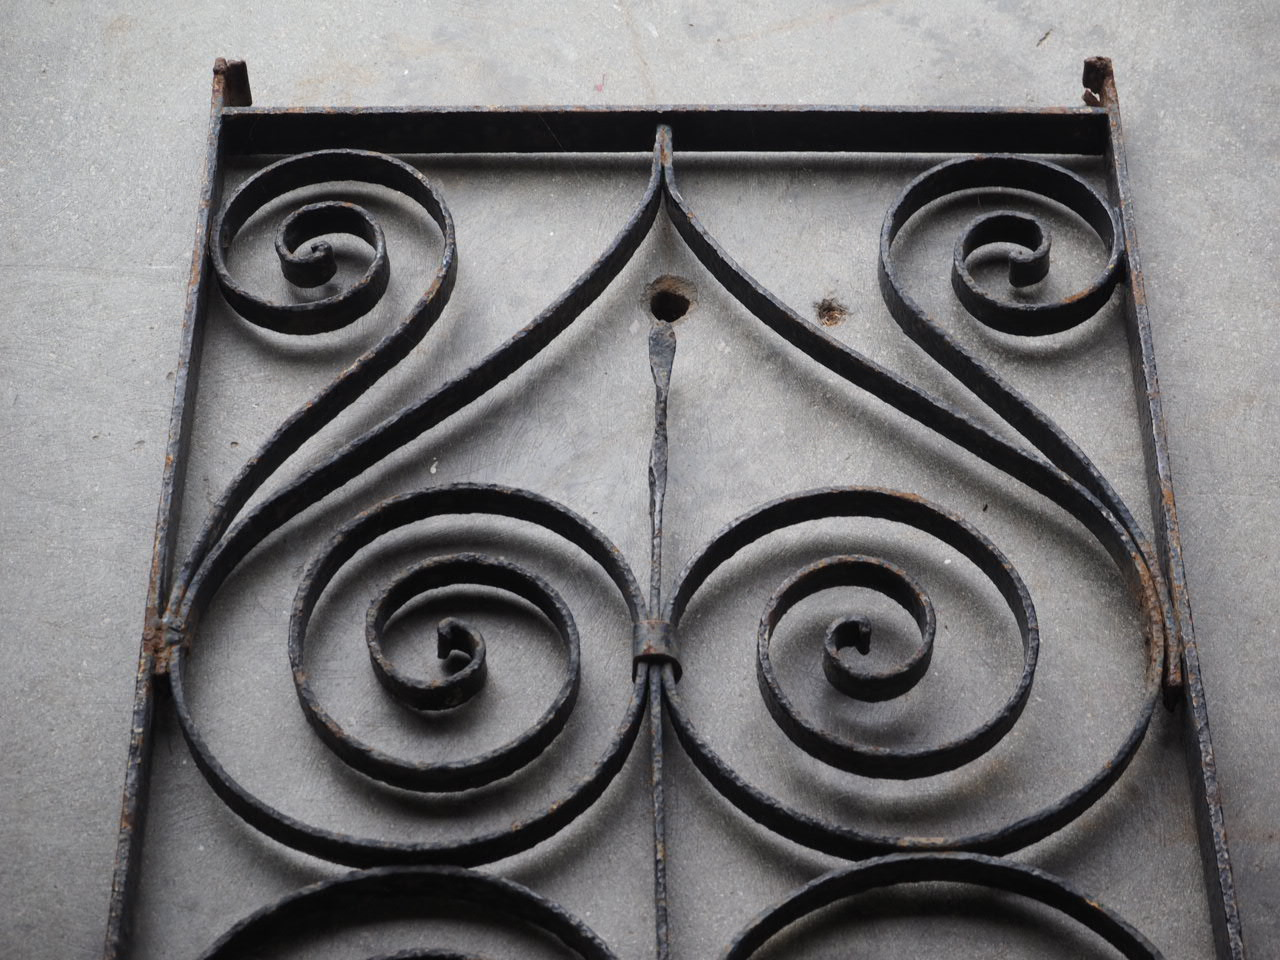 19th Century Ottoman wrought iron grille